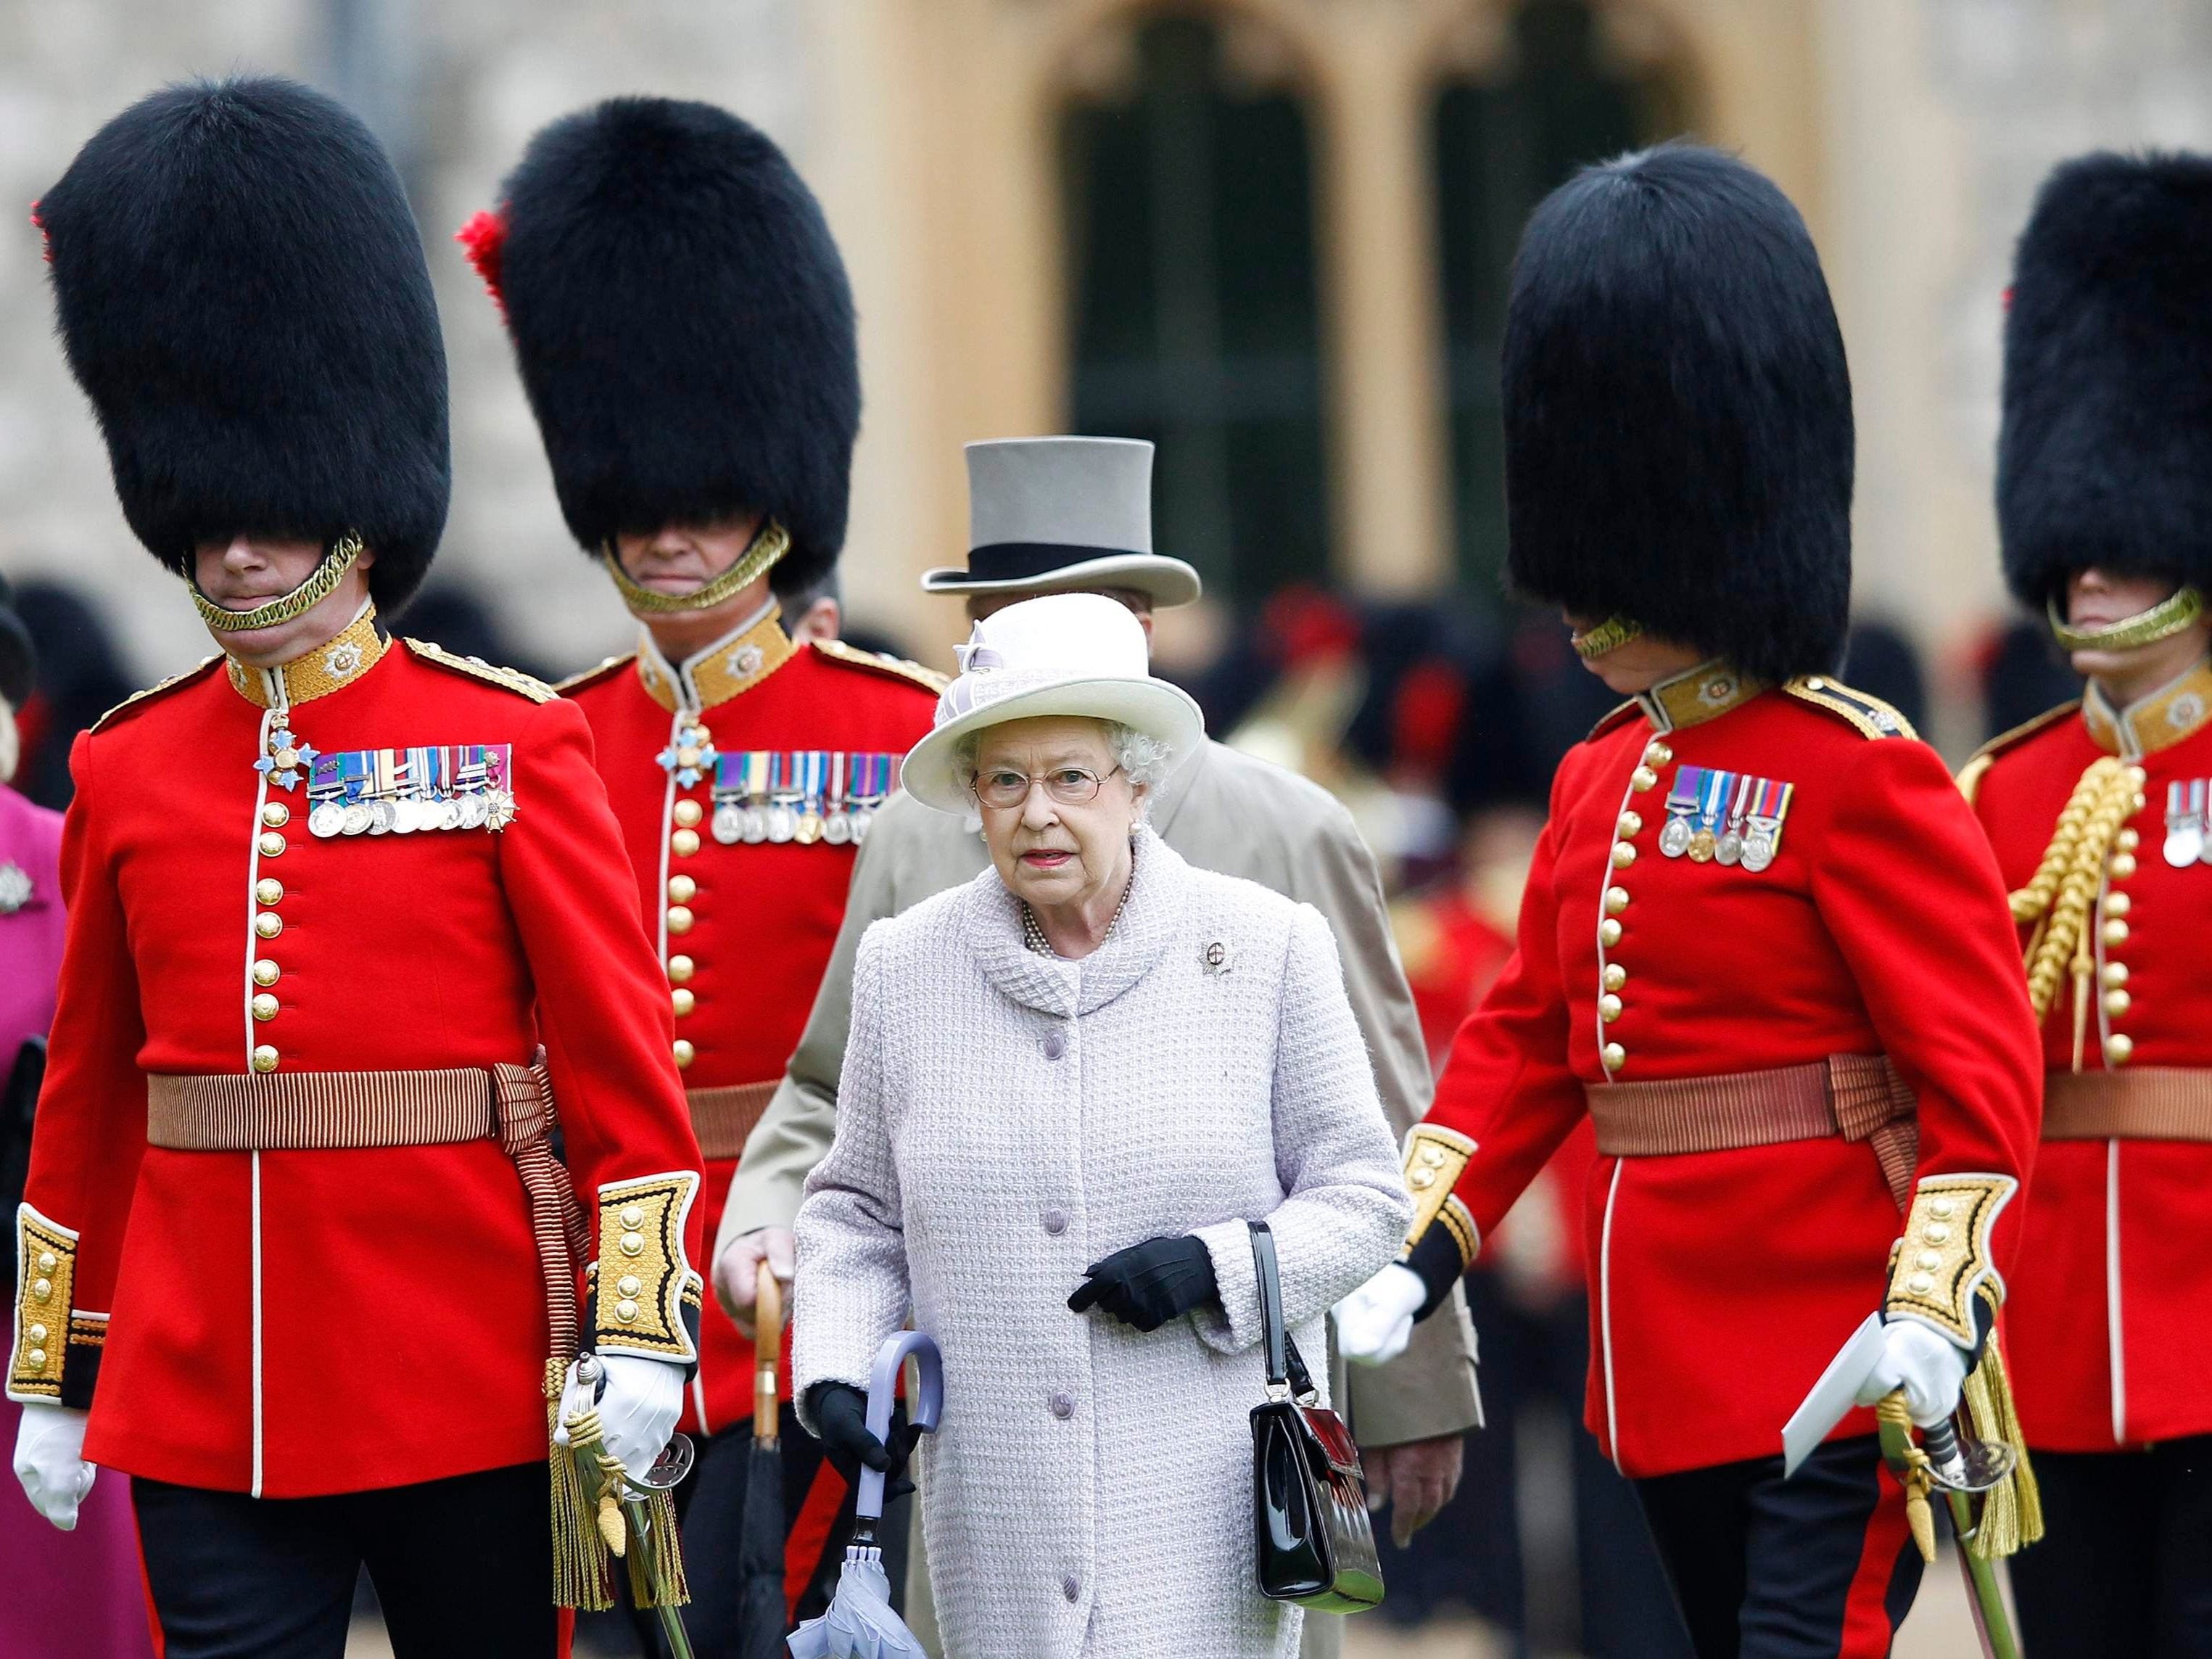 Will the Queen's Guard have to give up their bearskin hats?